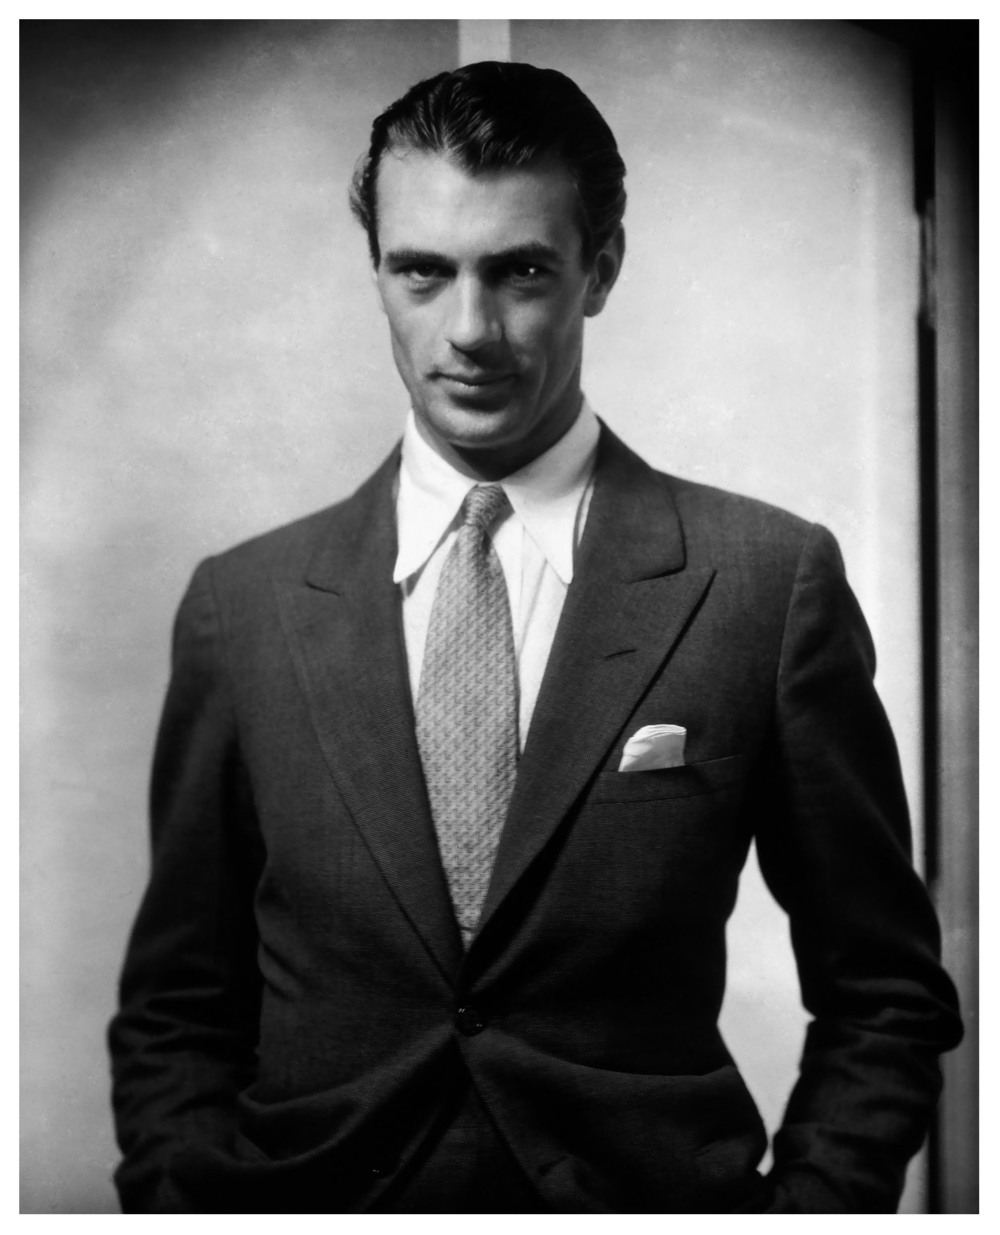 Gorgeous image of young Gary Cooper by Edward Steichen 1930